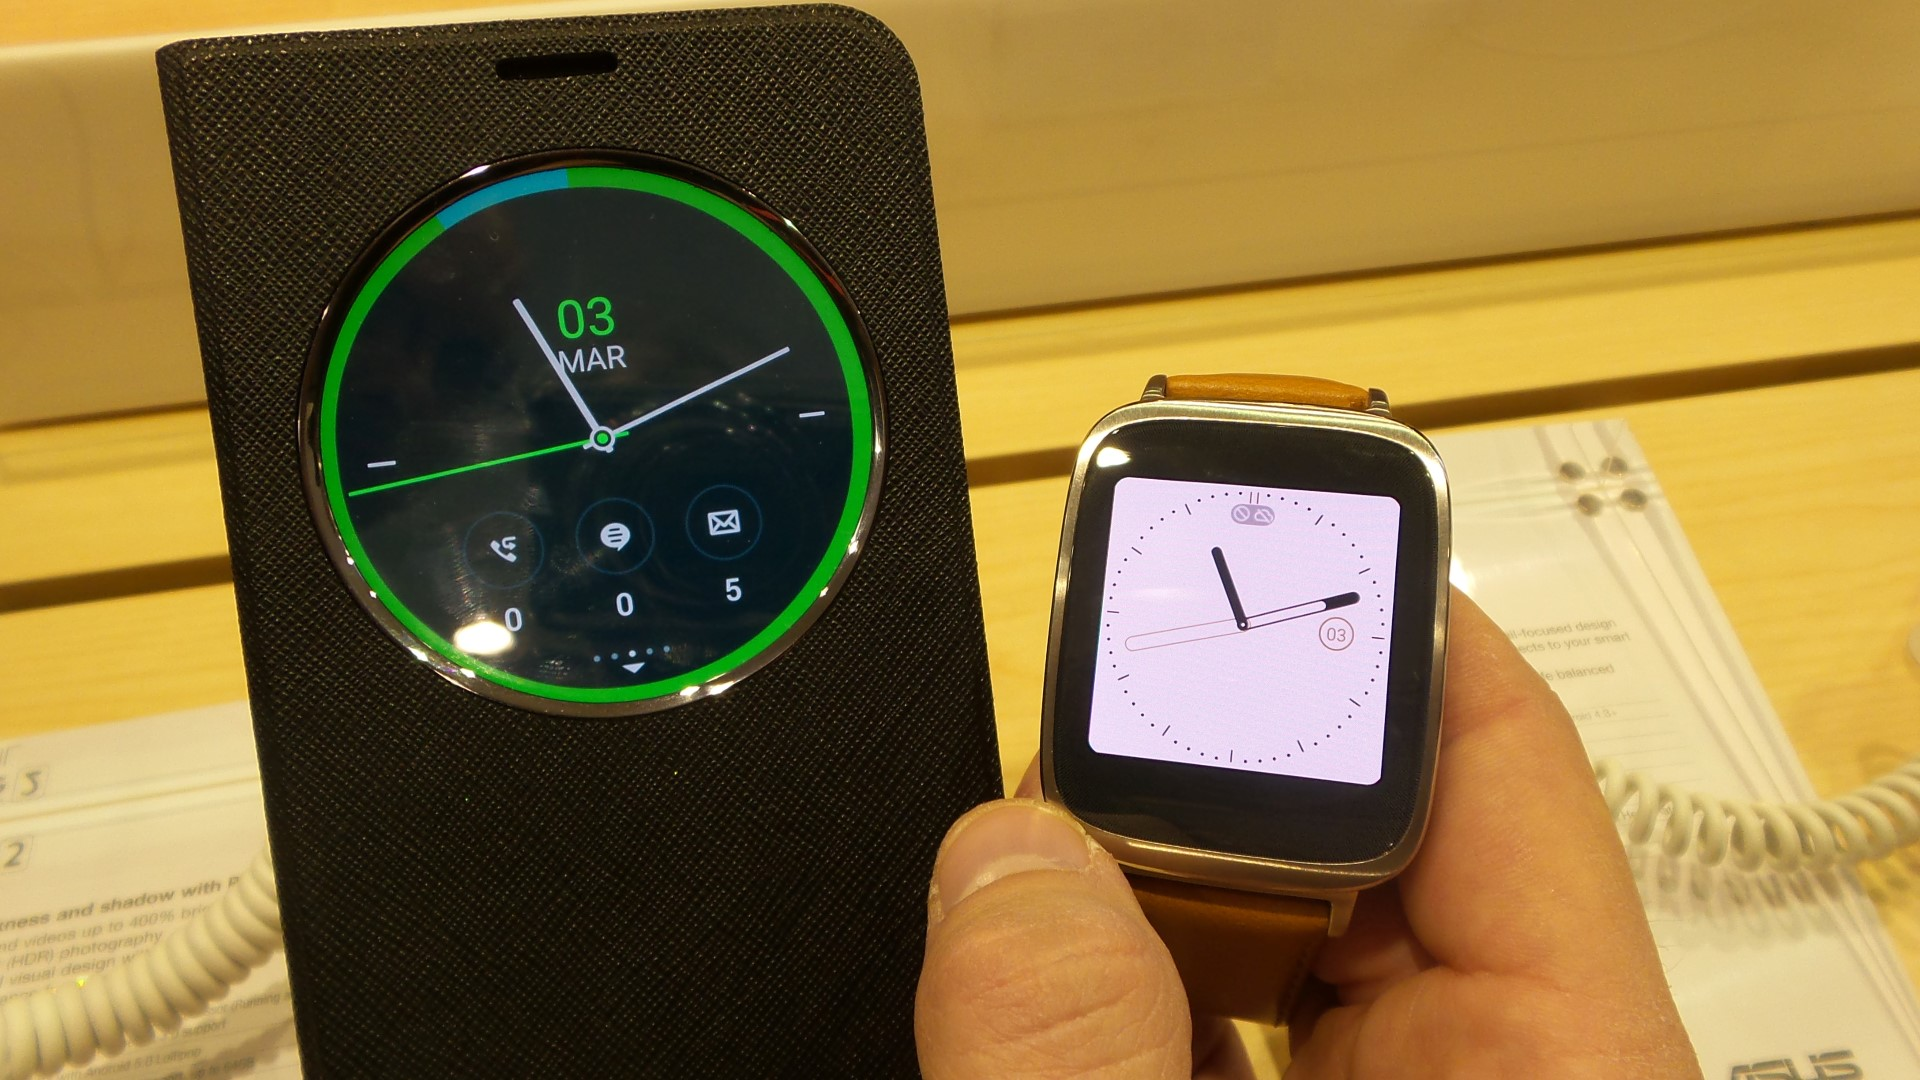 asus zenwatch hands on pics mwc 2015. Black Bedroom Furniture Sets. Home Design Ideas